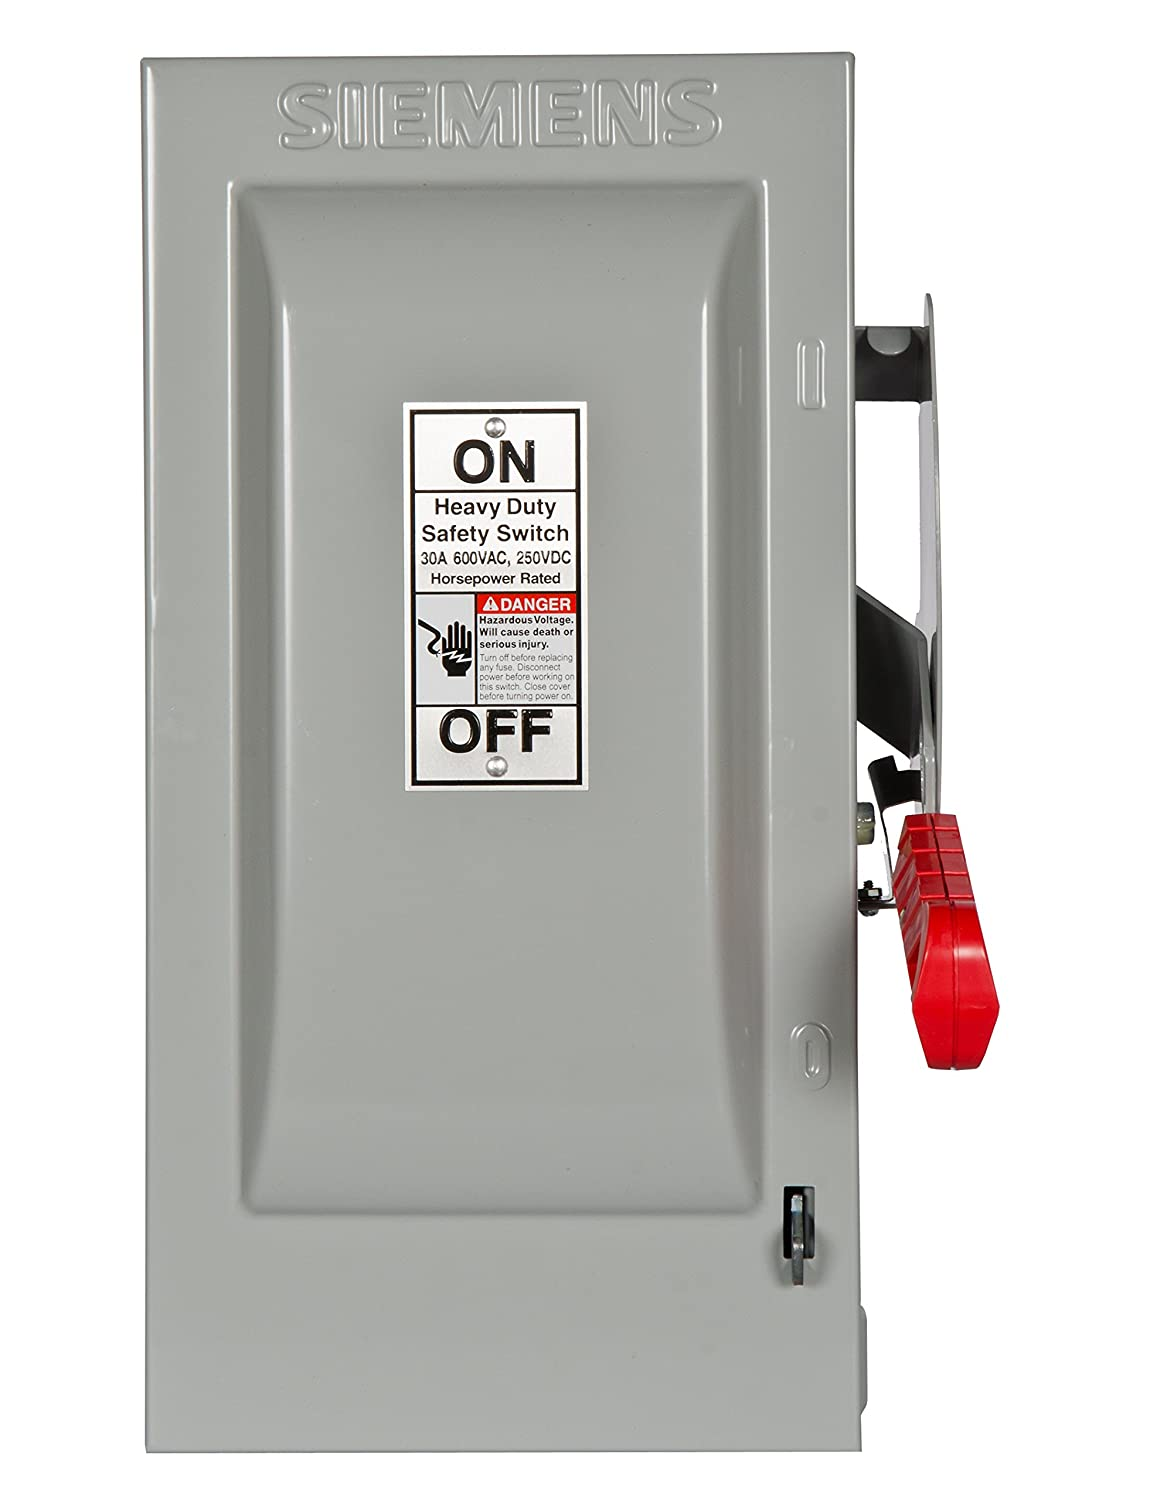 Siemens HF361 30-Amp 3 Pole 600-volt 3 Wire Fused Heavy Duty Safety  Switches - - Amazon.com